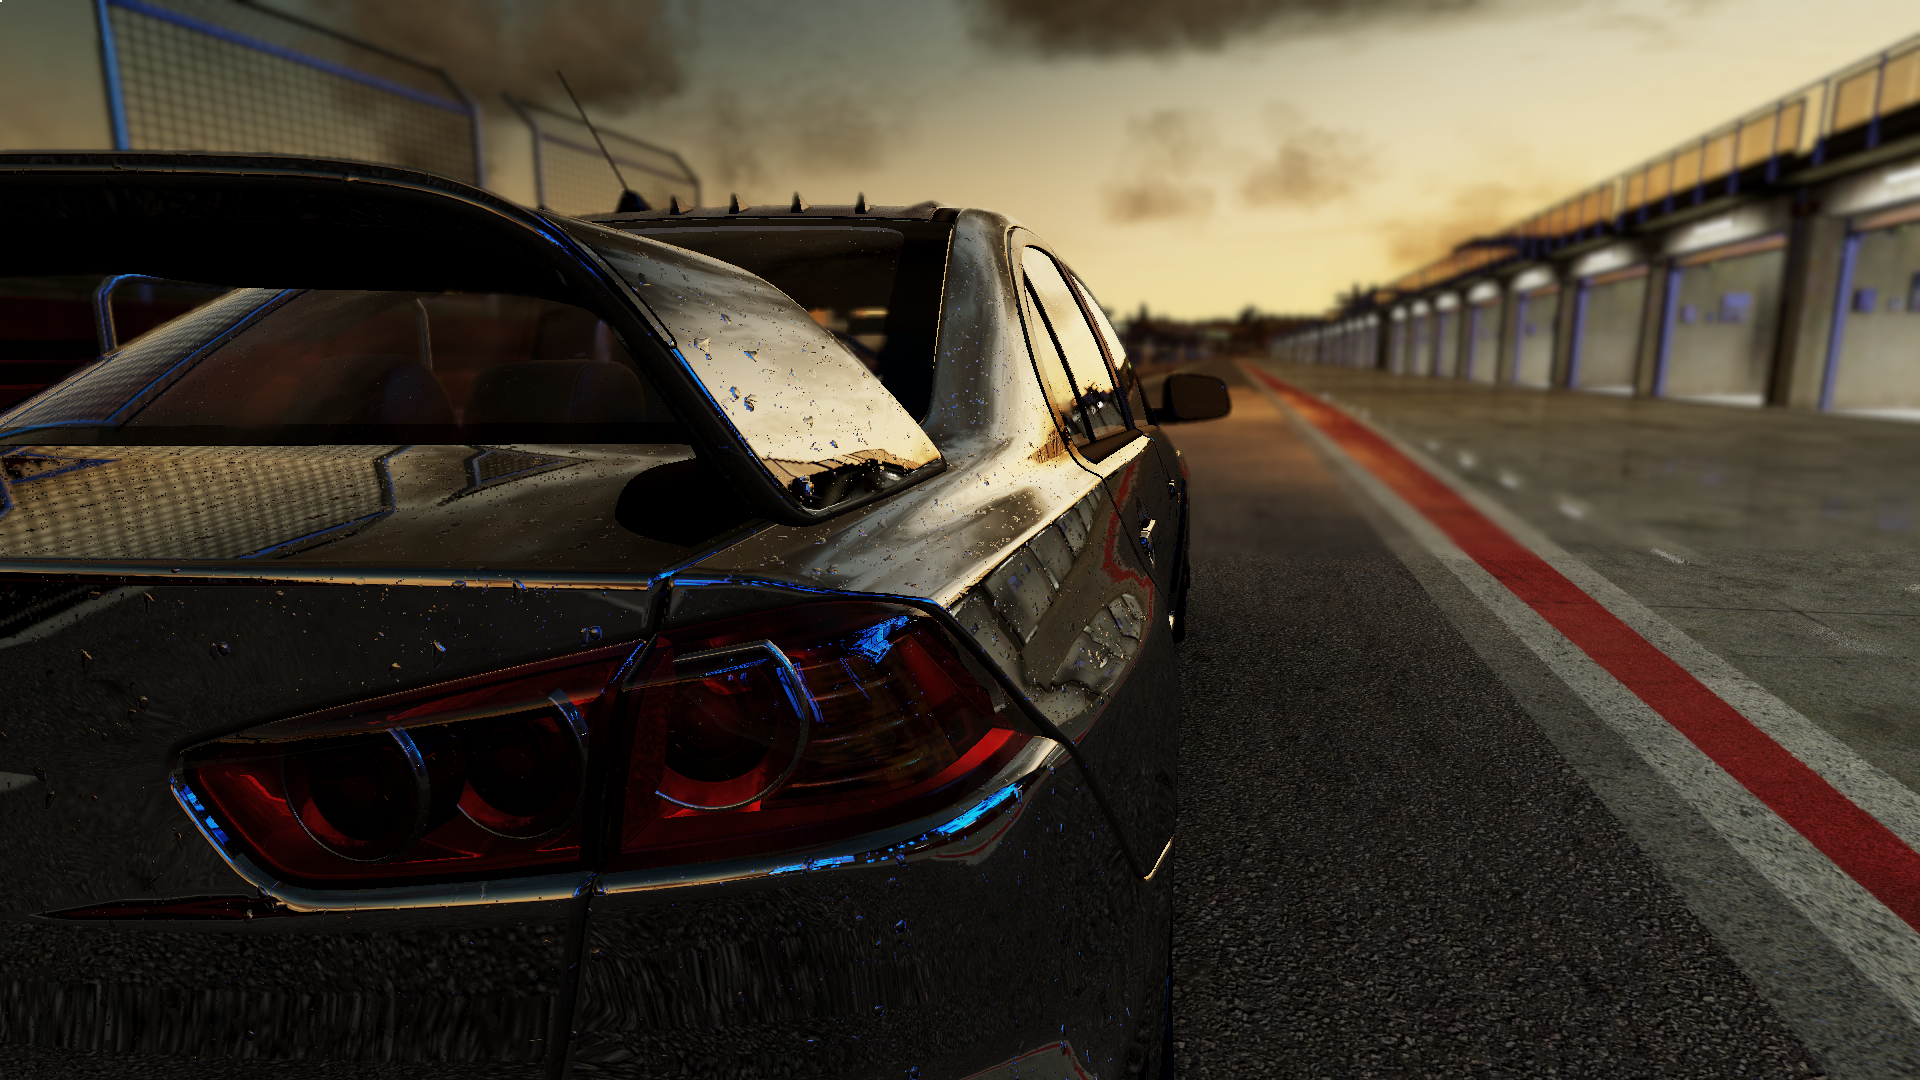 Download Project Cars Wallpaper Hd 47279 1920x1080 Px High